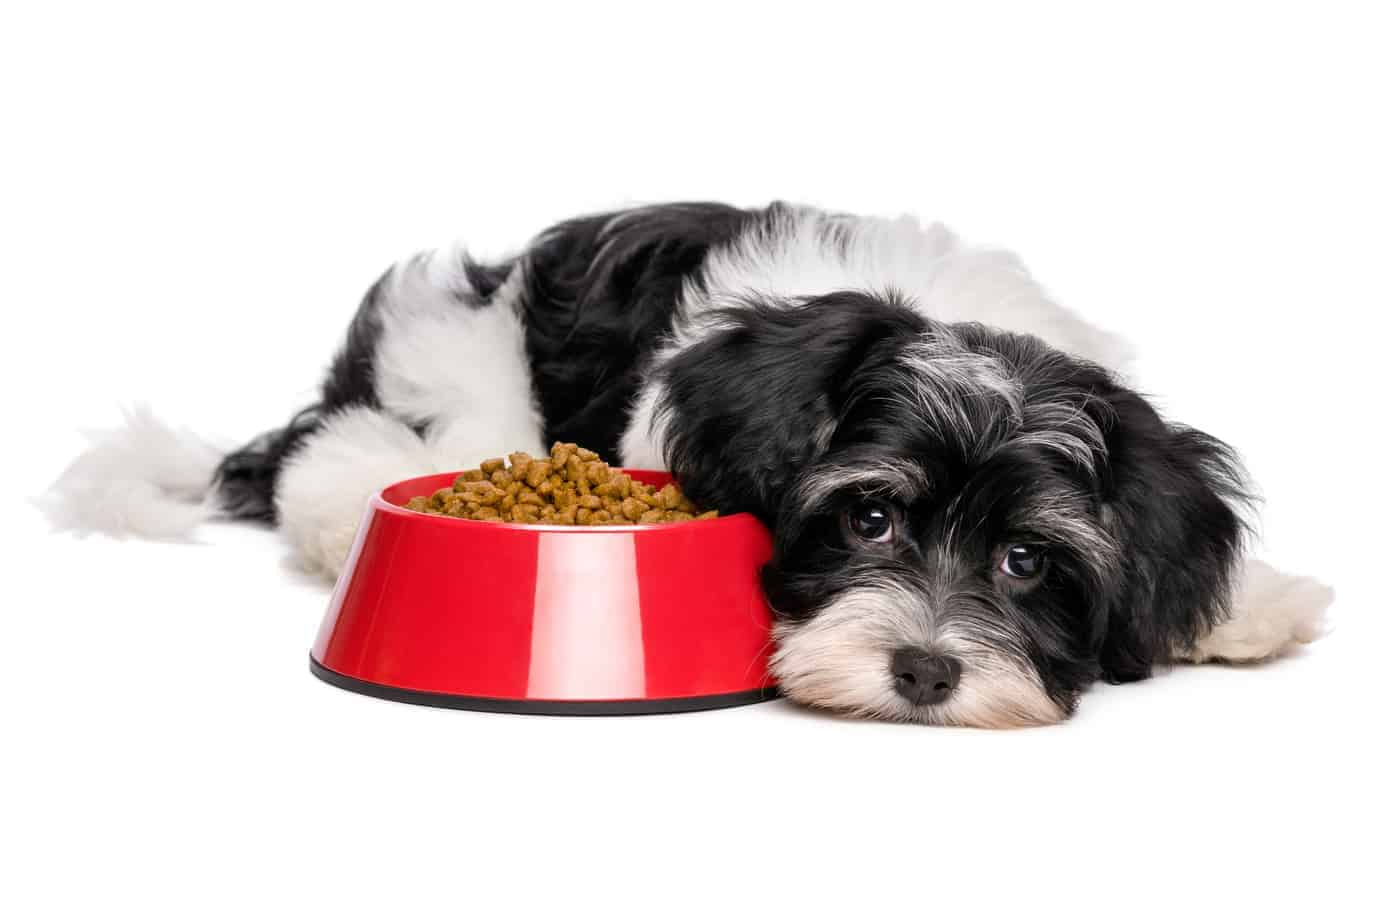 Cute Havanese puppy with dog food dish. Enzymes in dog food improve digestion by improving the absorption of nutrients, removing excess fat, and breaking down plant materials.